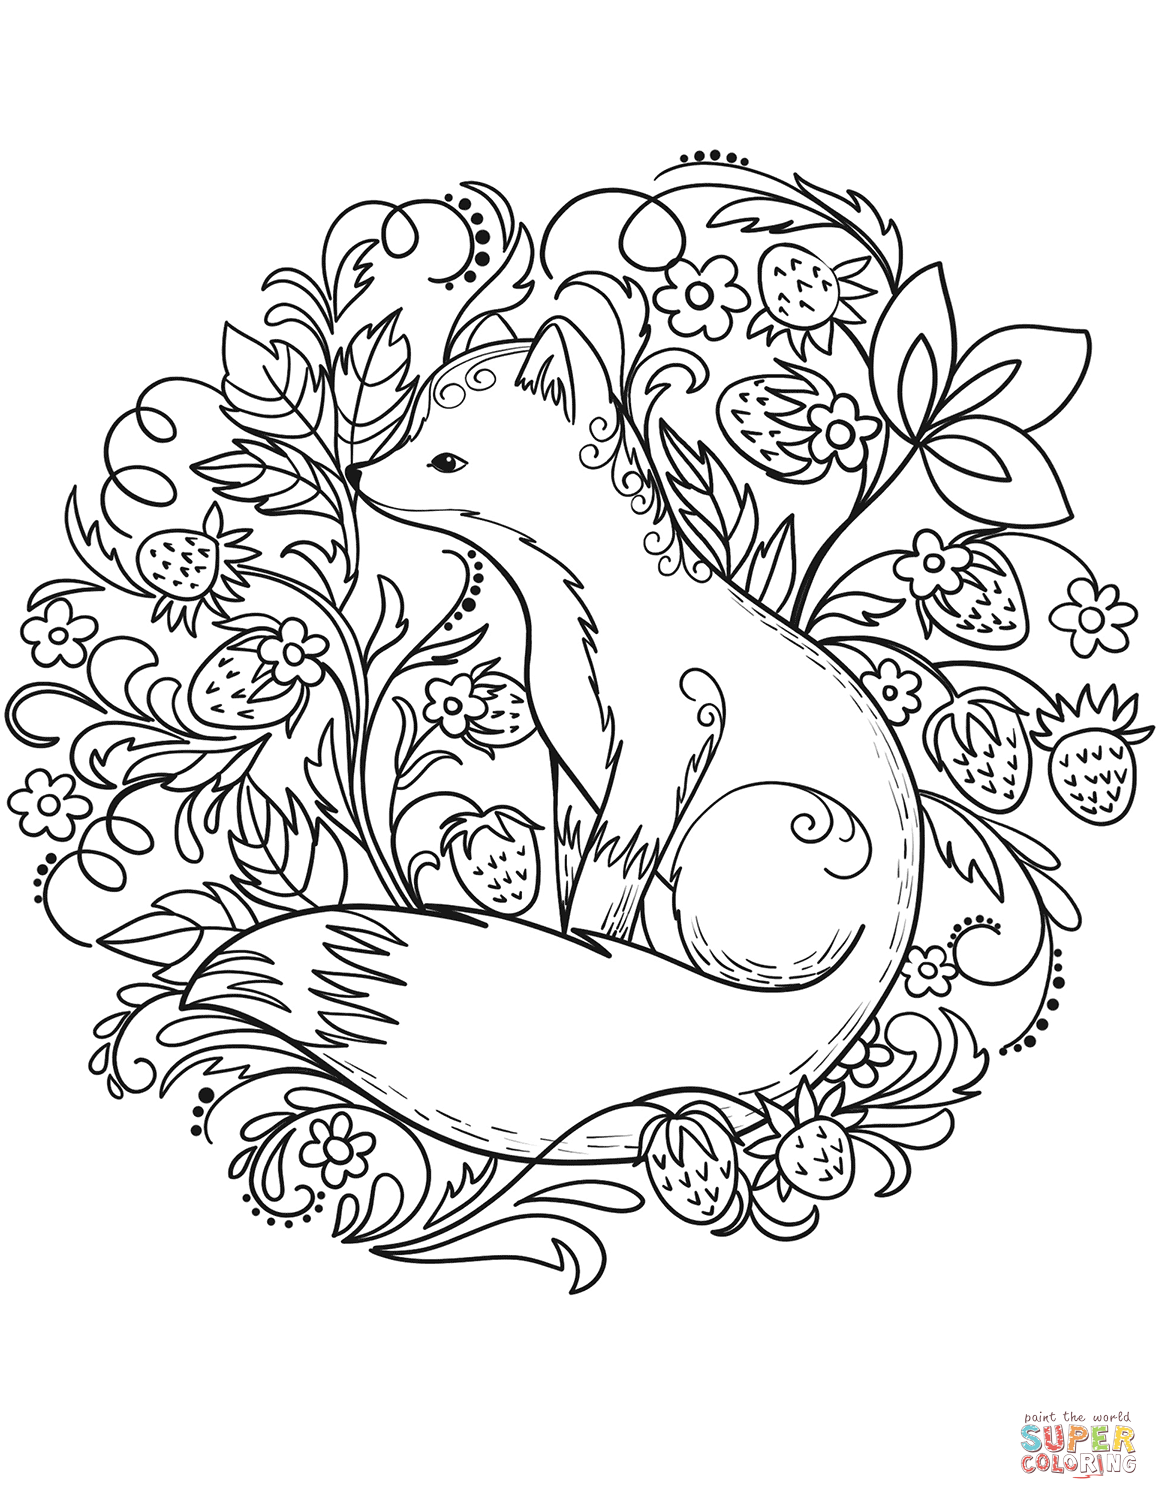 Fox Coloring Page From Red Fox Category Select From 27968 Printable Crafts Of Cartoons Nature Anim Fox Coloring Page Coloring Pages Valentine Coloring Pages